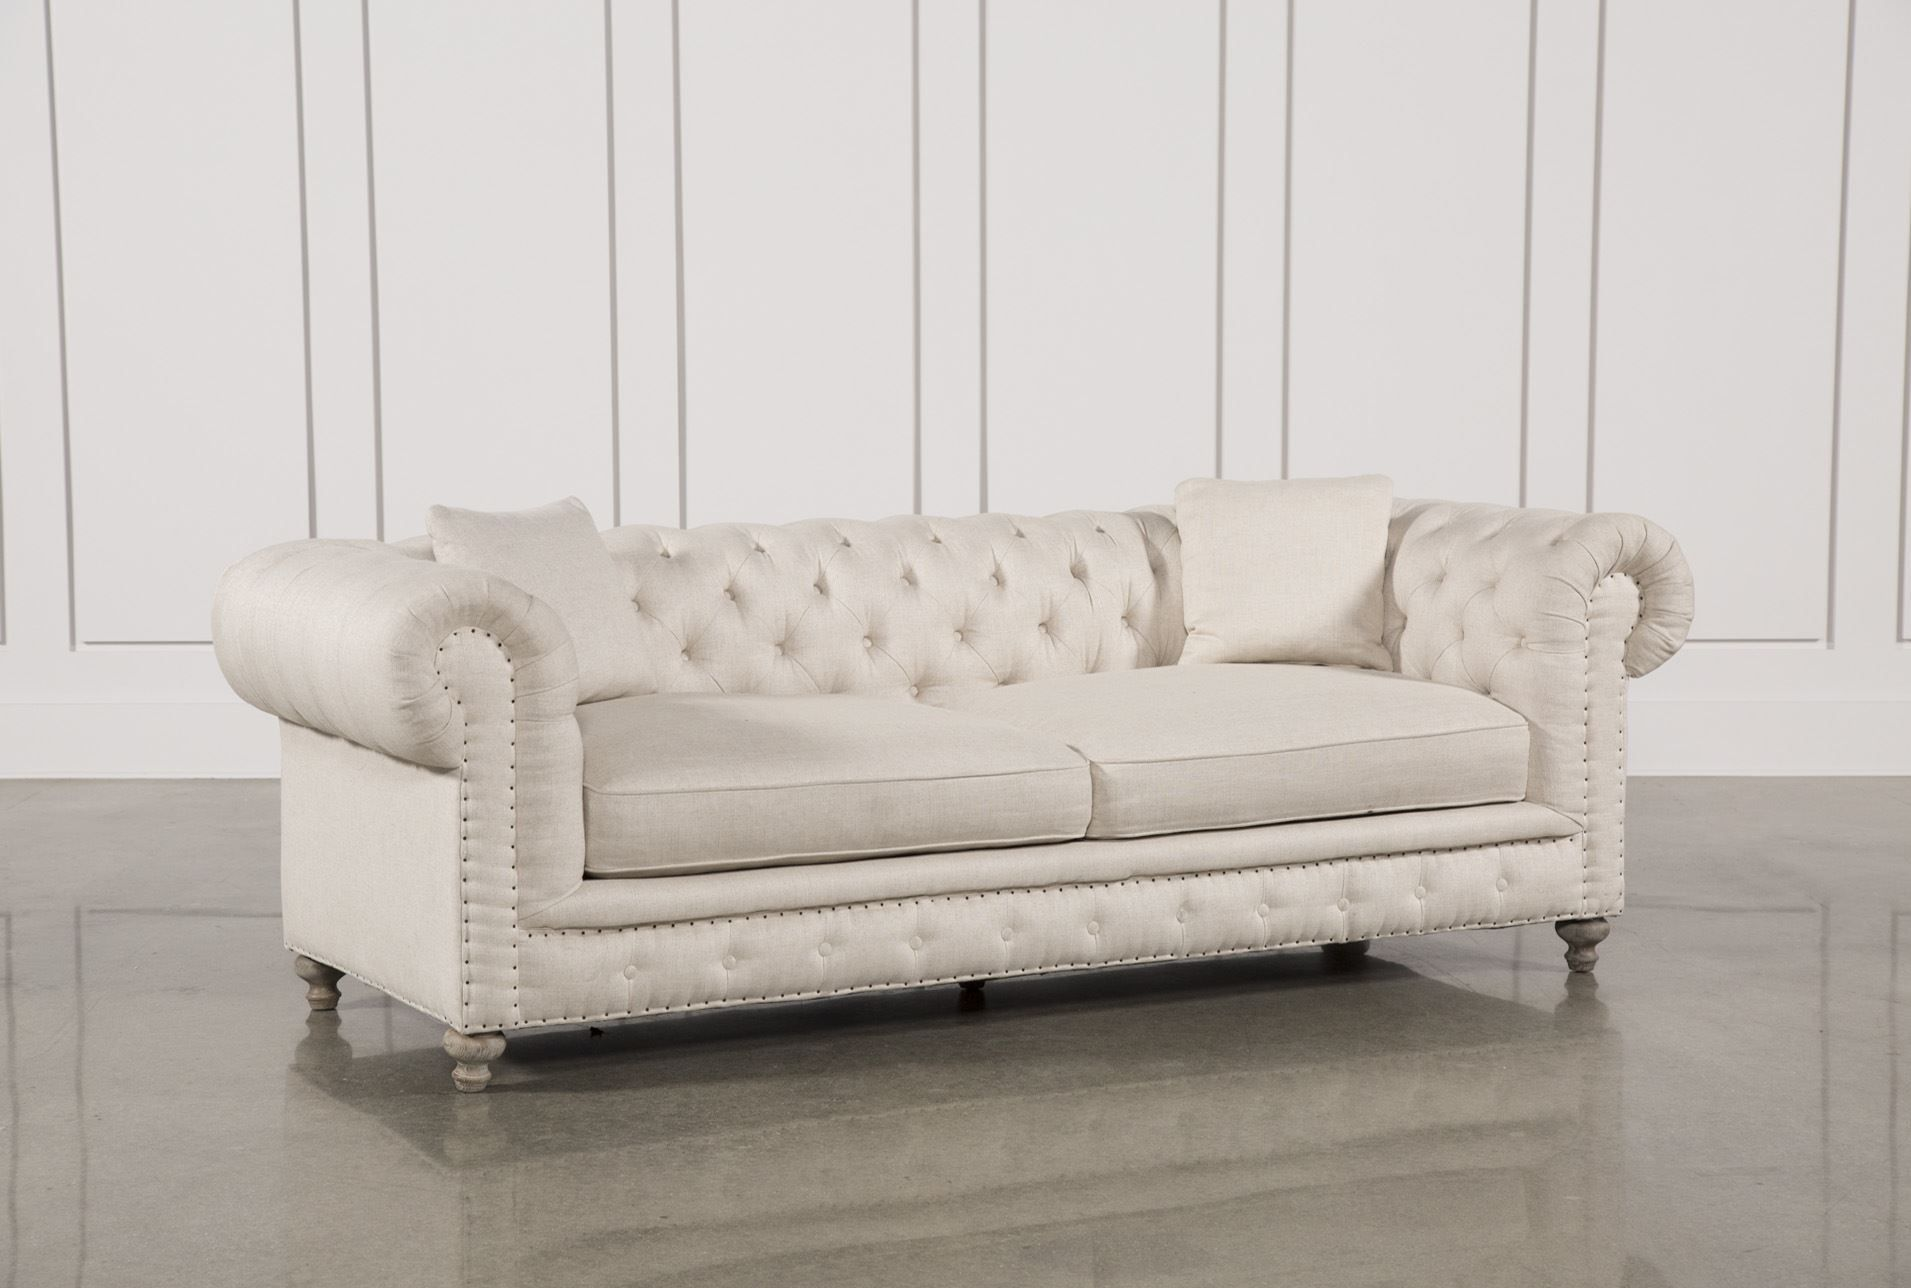 Leather Sofa Vs Fabric Sofa Why Each Of Them Is Still Valuable Fabric Sofa Leather Sofa Buy Sofa